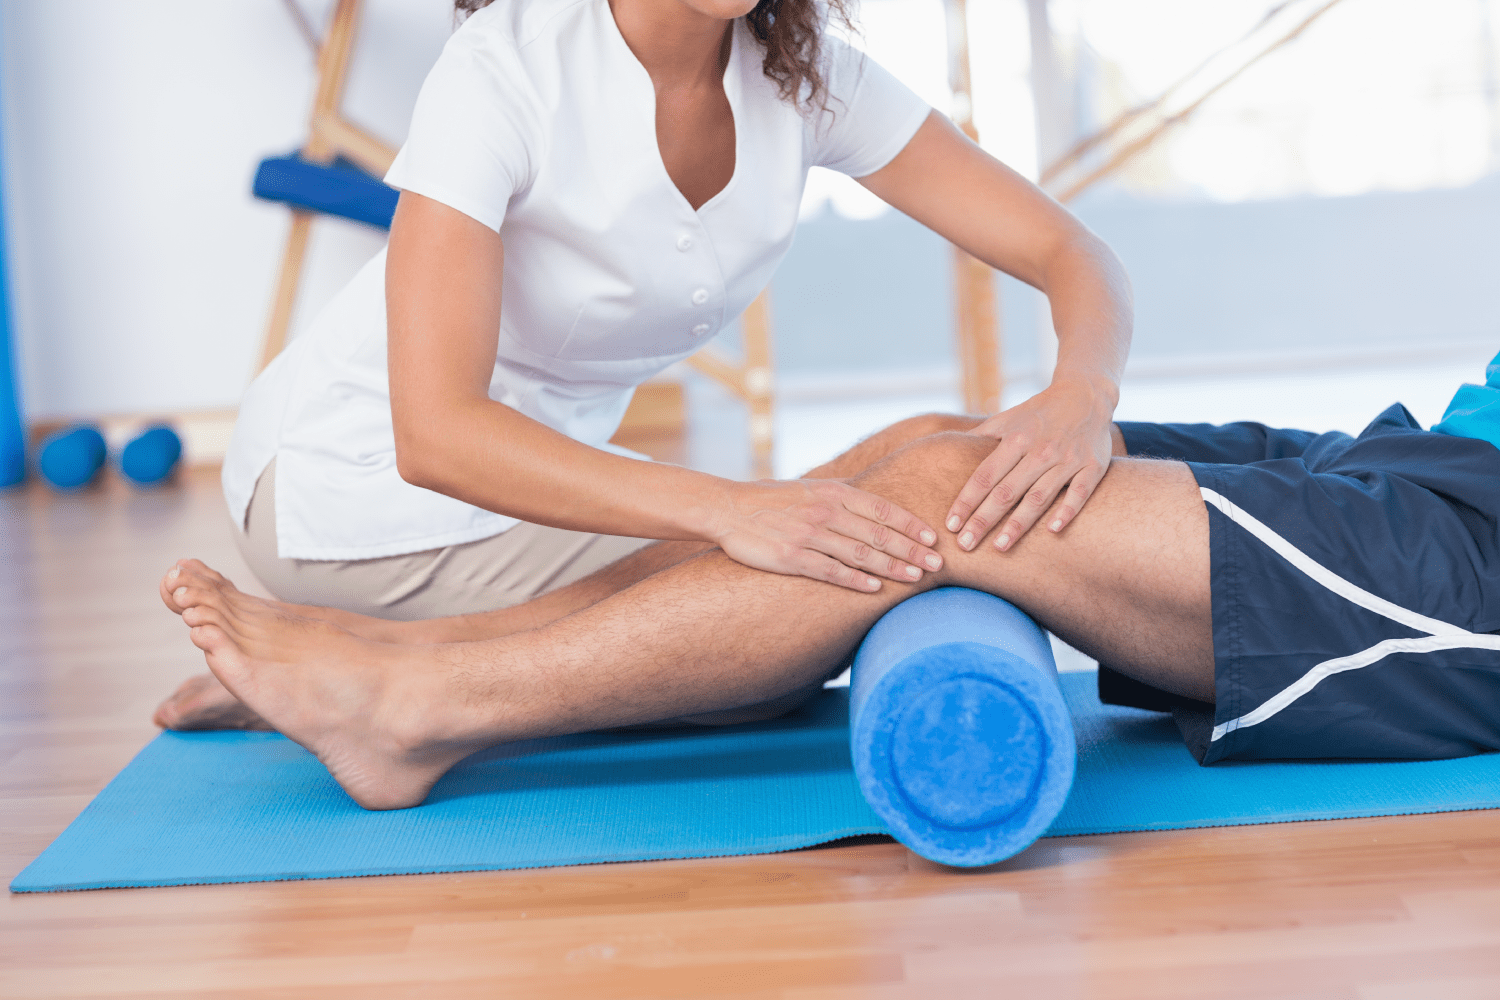 Clinician doing physiotherapy on a patient's knee